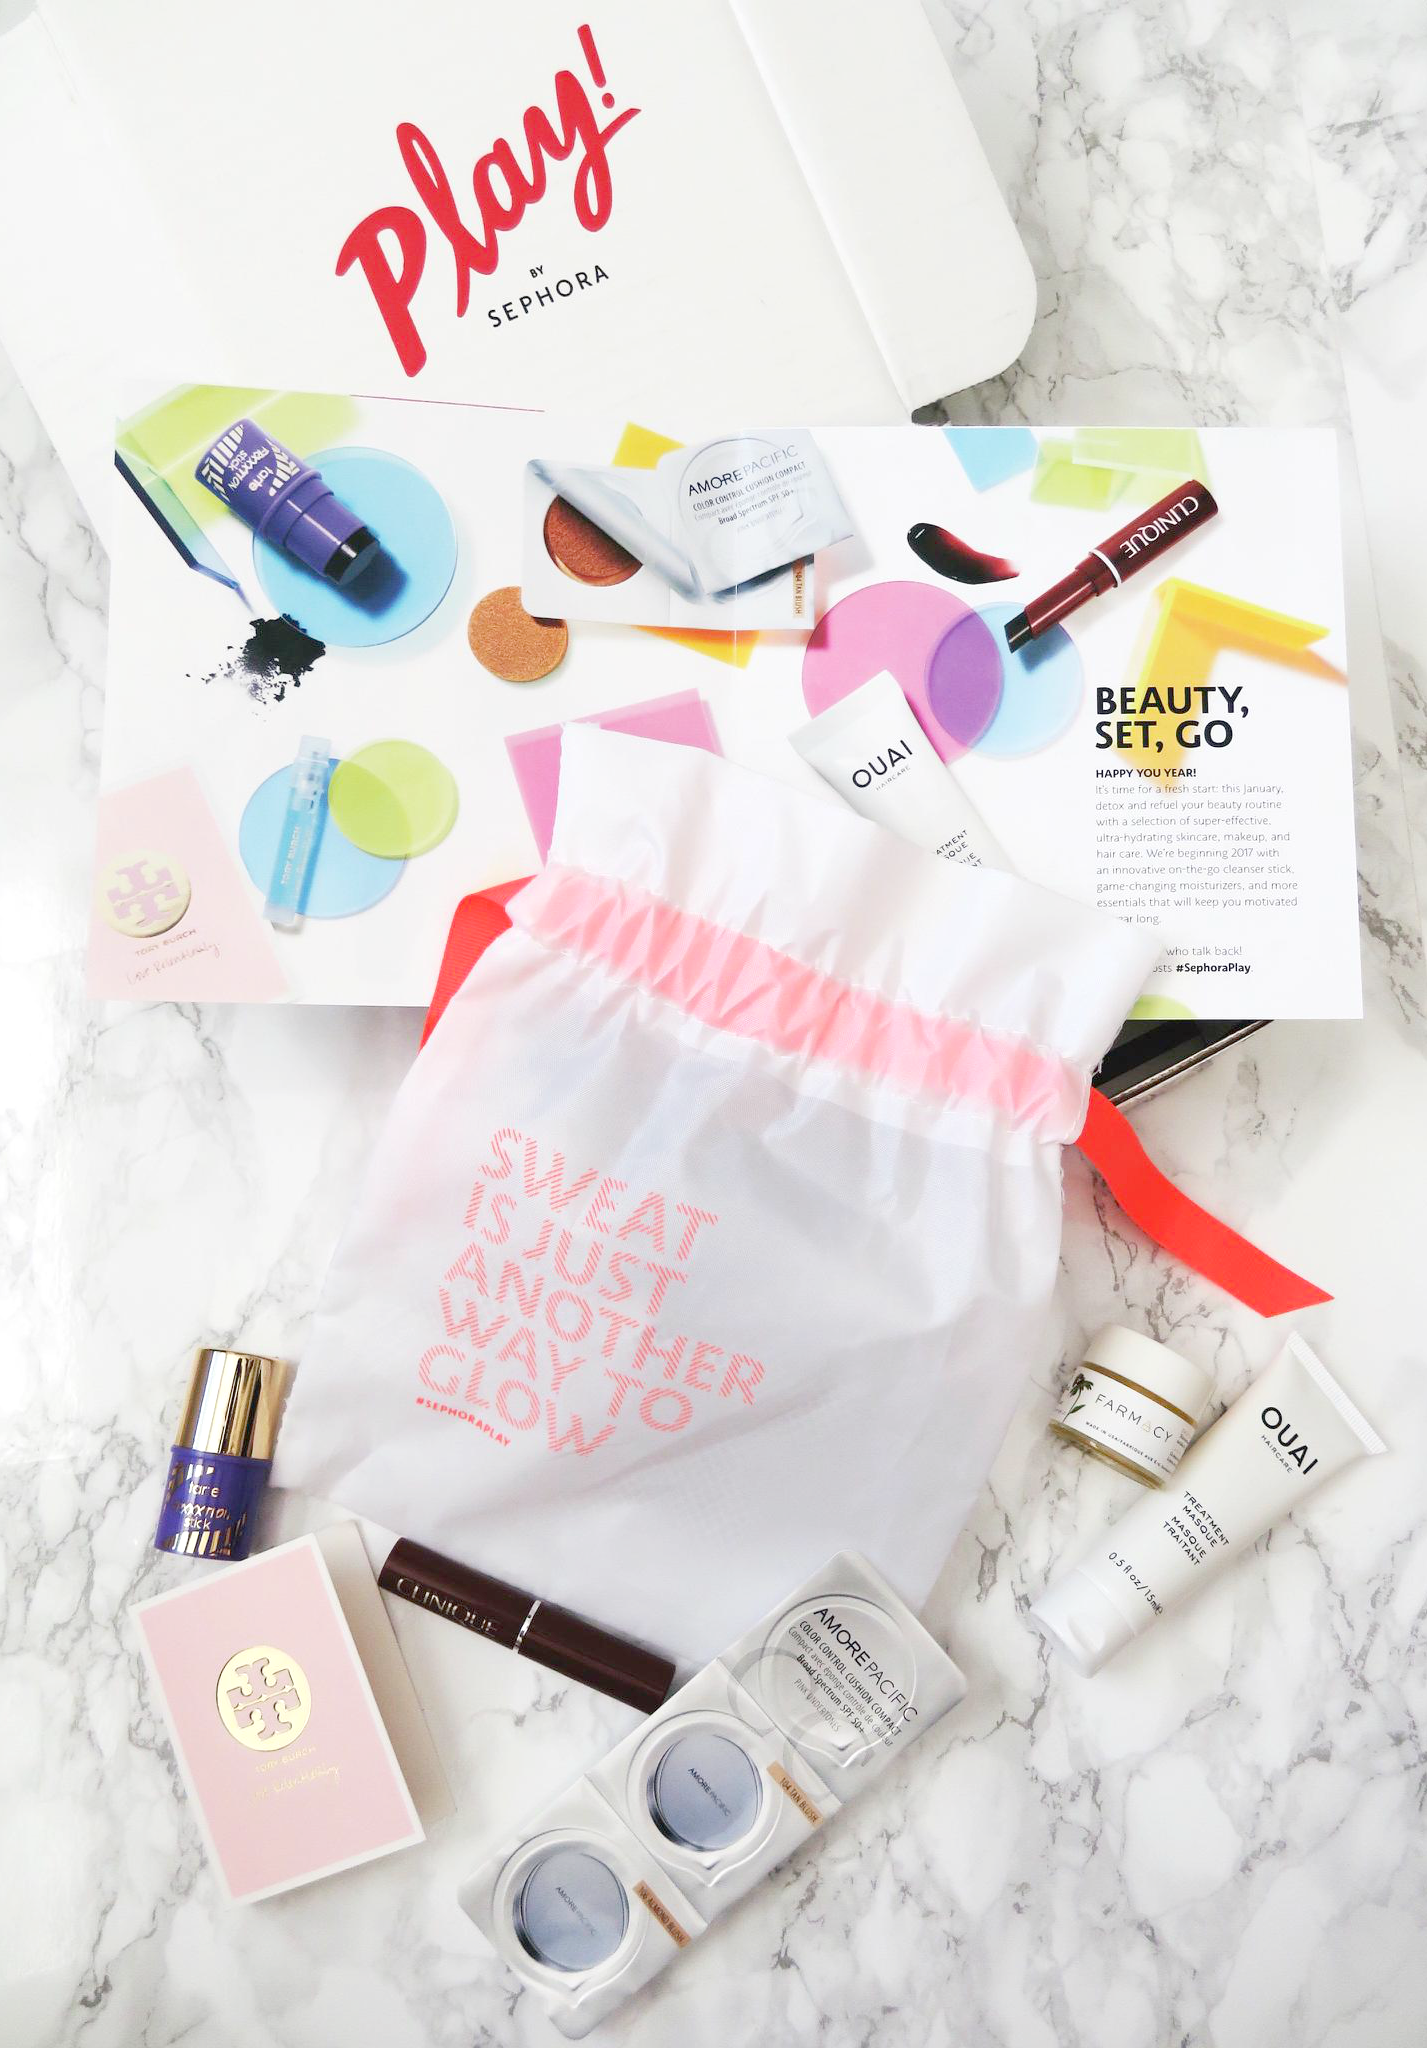 Play! by Sephora January Review Subscription boxes for